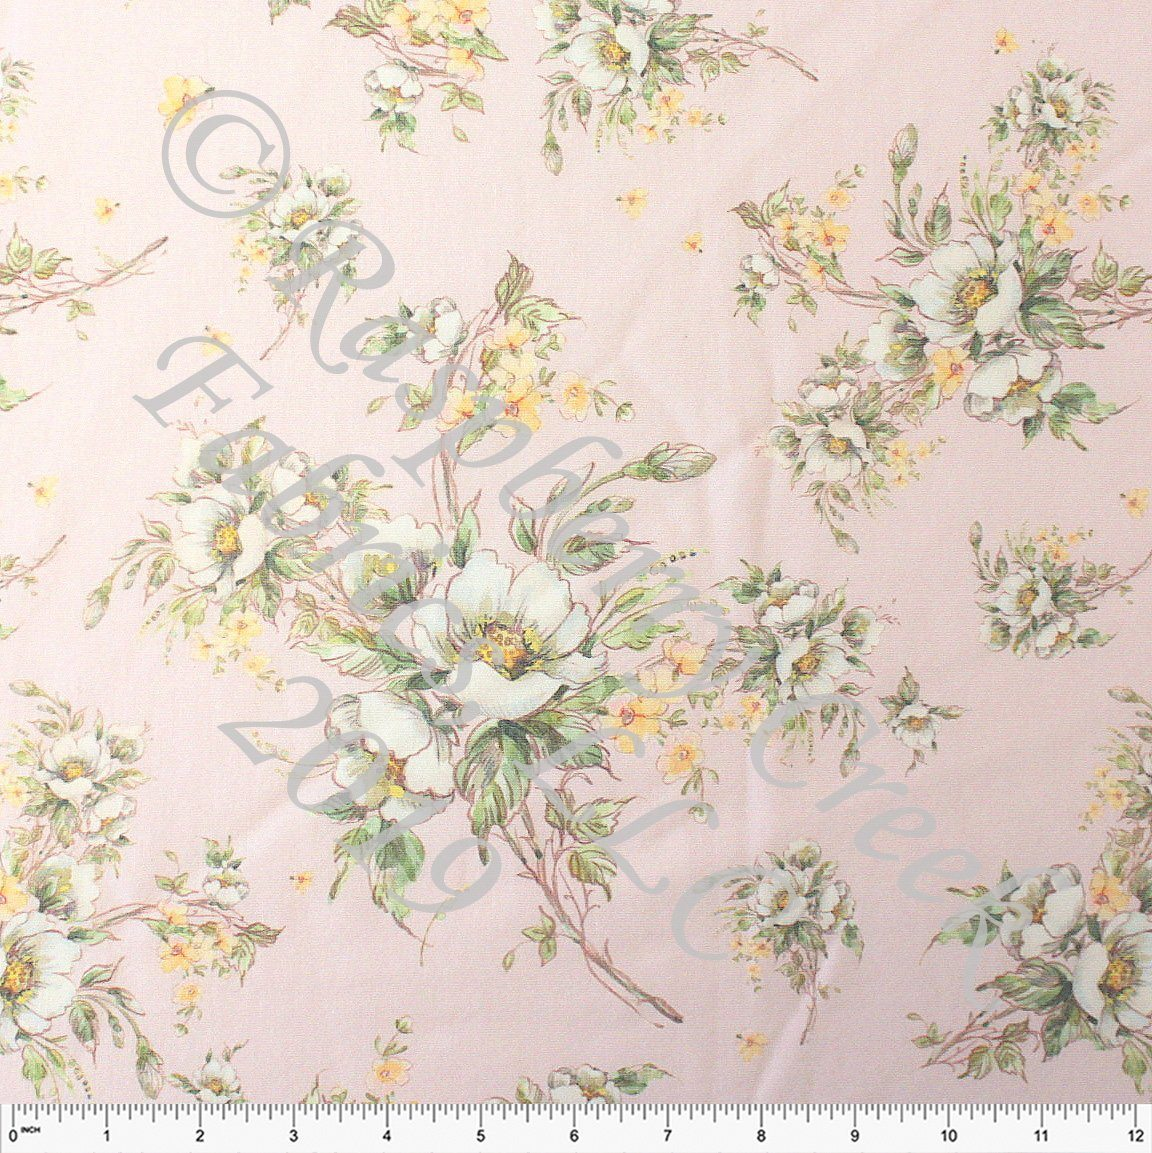 Pale Pink Cream Yellow and Green Floral Heathered FLEECE Sweatshirt Knit Fabric, CLUB Fabrics - Raspberry Creek Fabrics